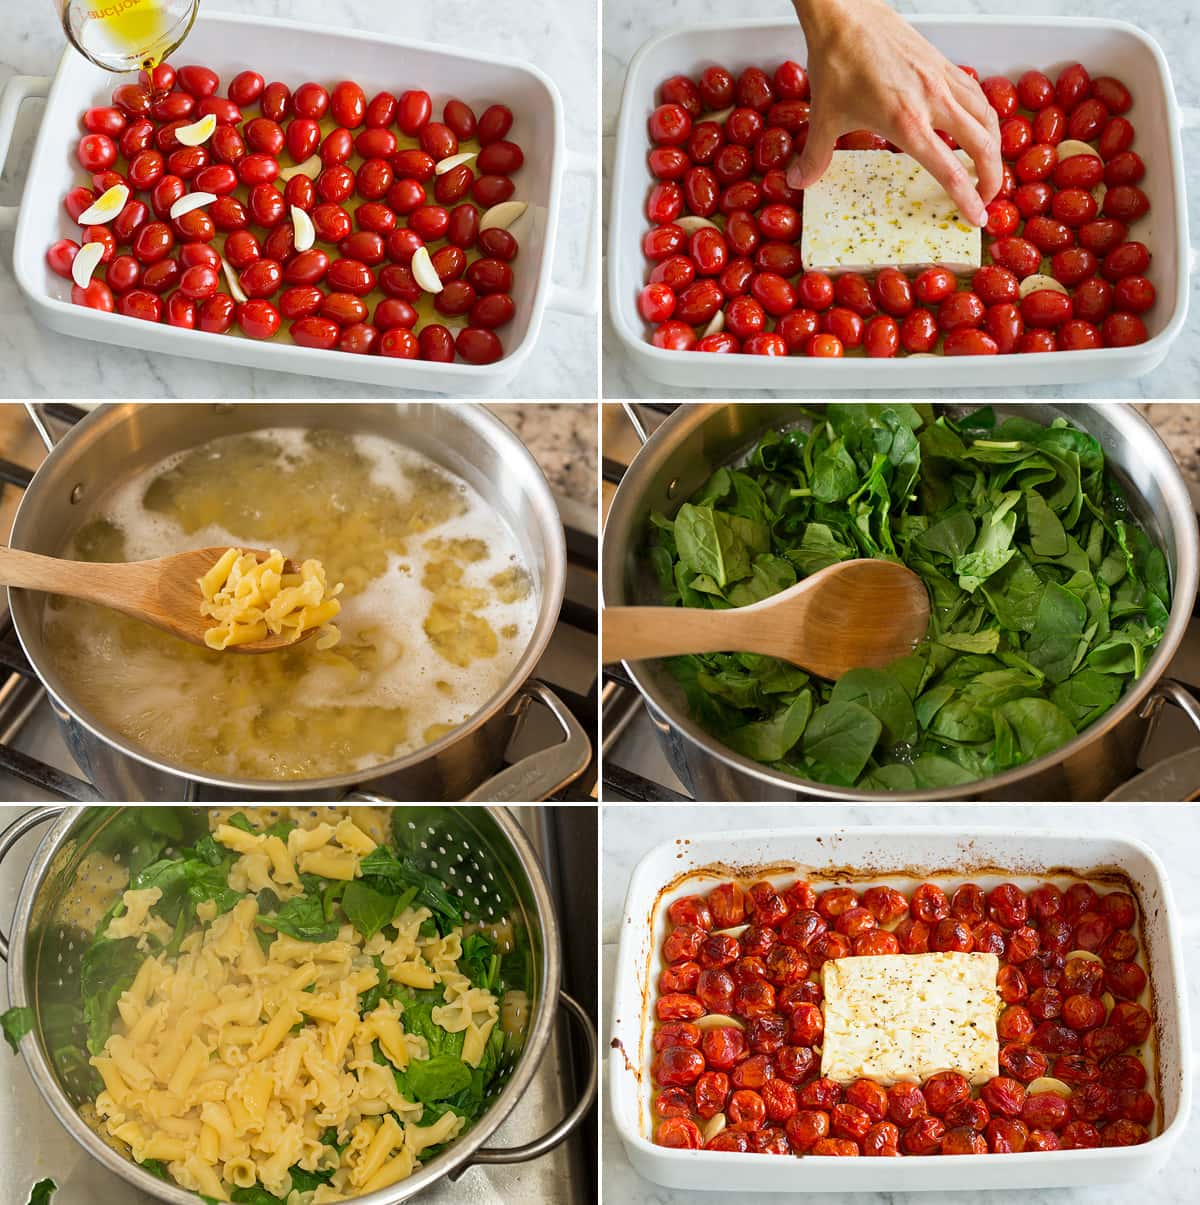 Collage of six photos showing steps to roasting tomatoes and feta in a baking dish, and boiling pasta and spinach.